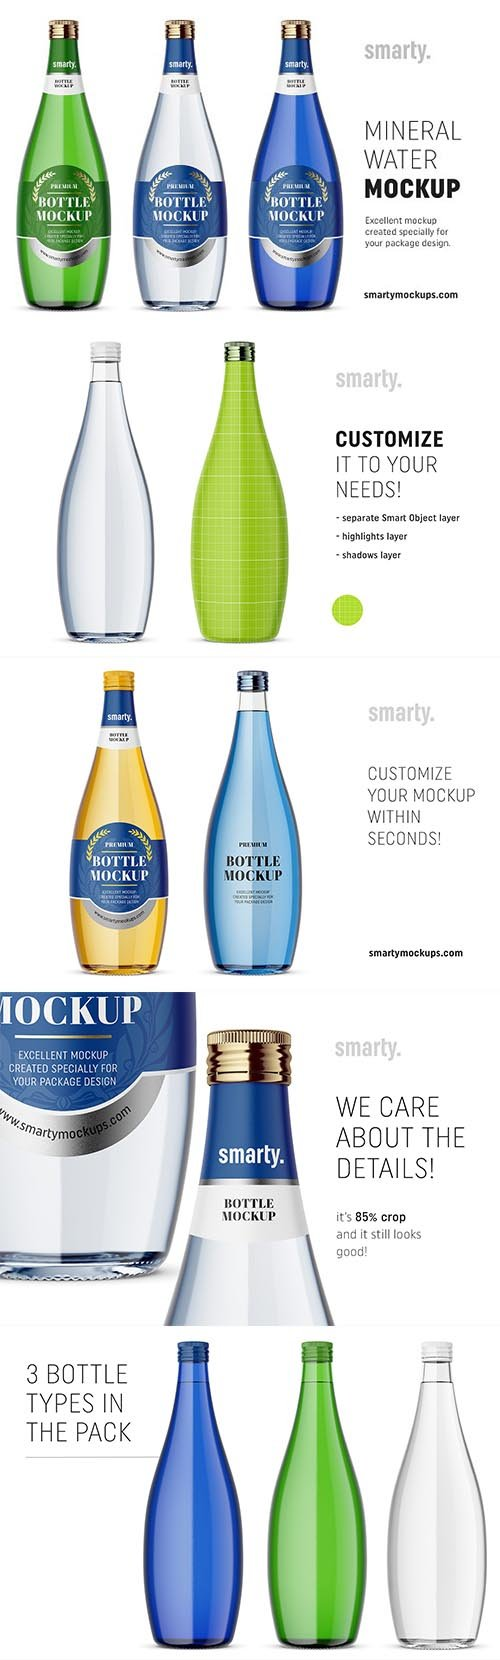 CreativeMarket - Glass mineral water bottle mockups 2975498